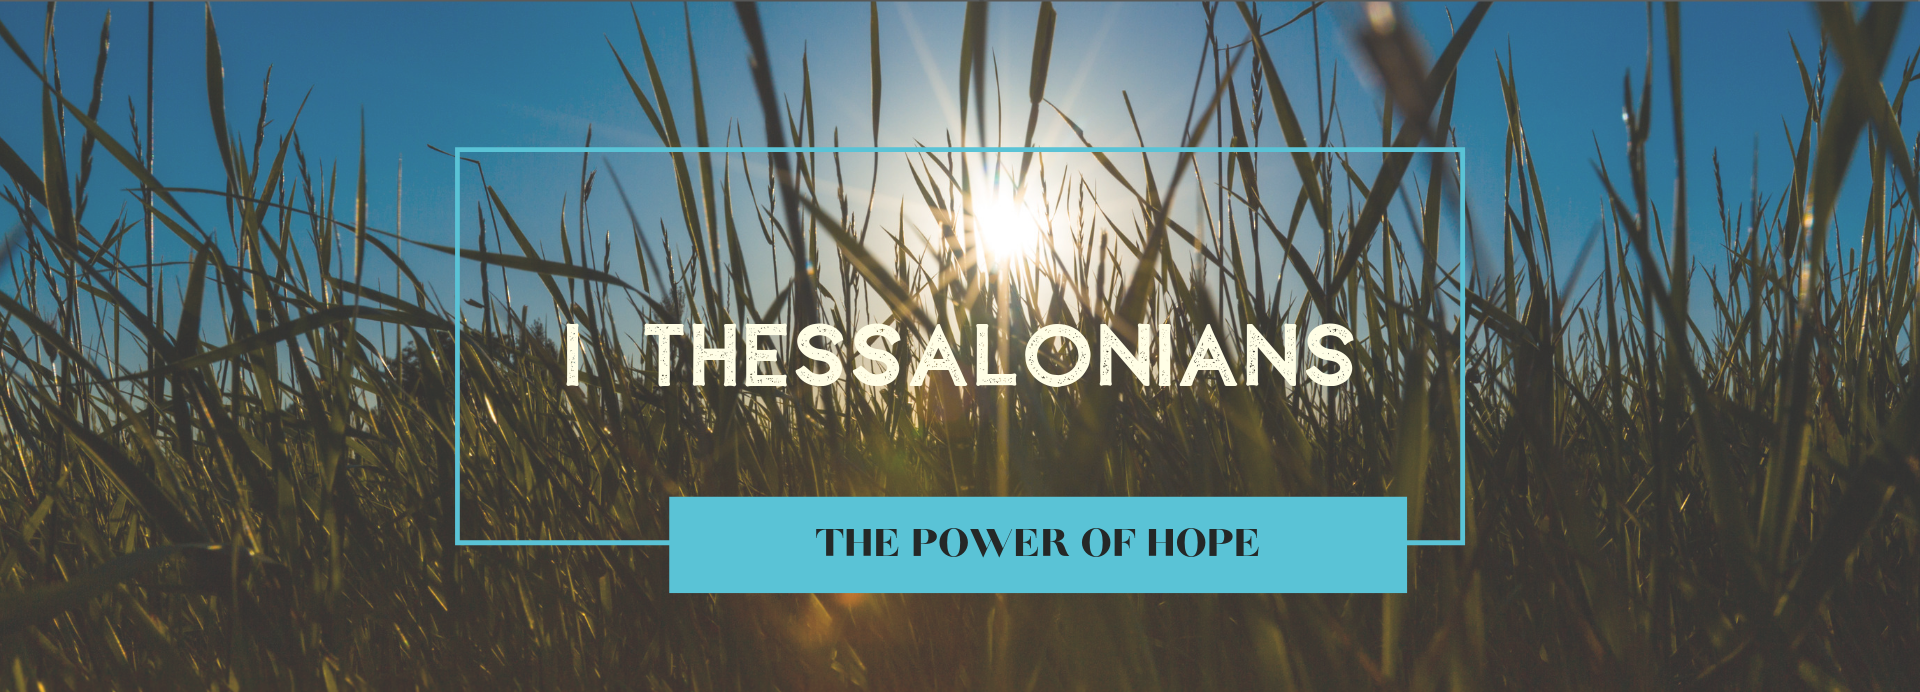 1_Thessalonians_Banner.png